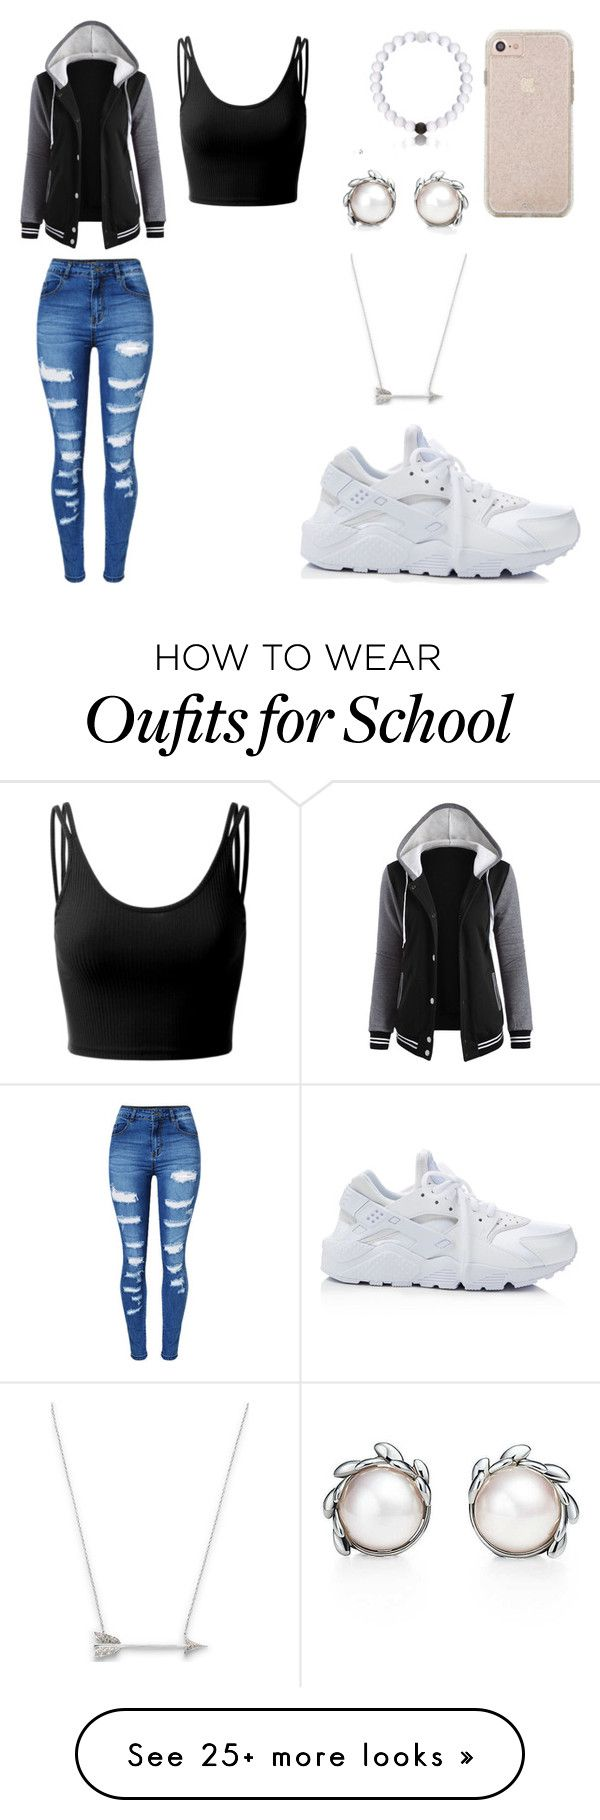 """""""HIGH SCHOOL STYLE"""" by mgarcia-iii on Polyvore featuring Tiffany & Co., Estella Bartlett, Doublju, WithChic and NIKE"""